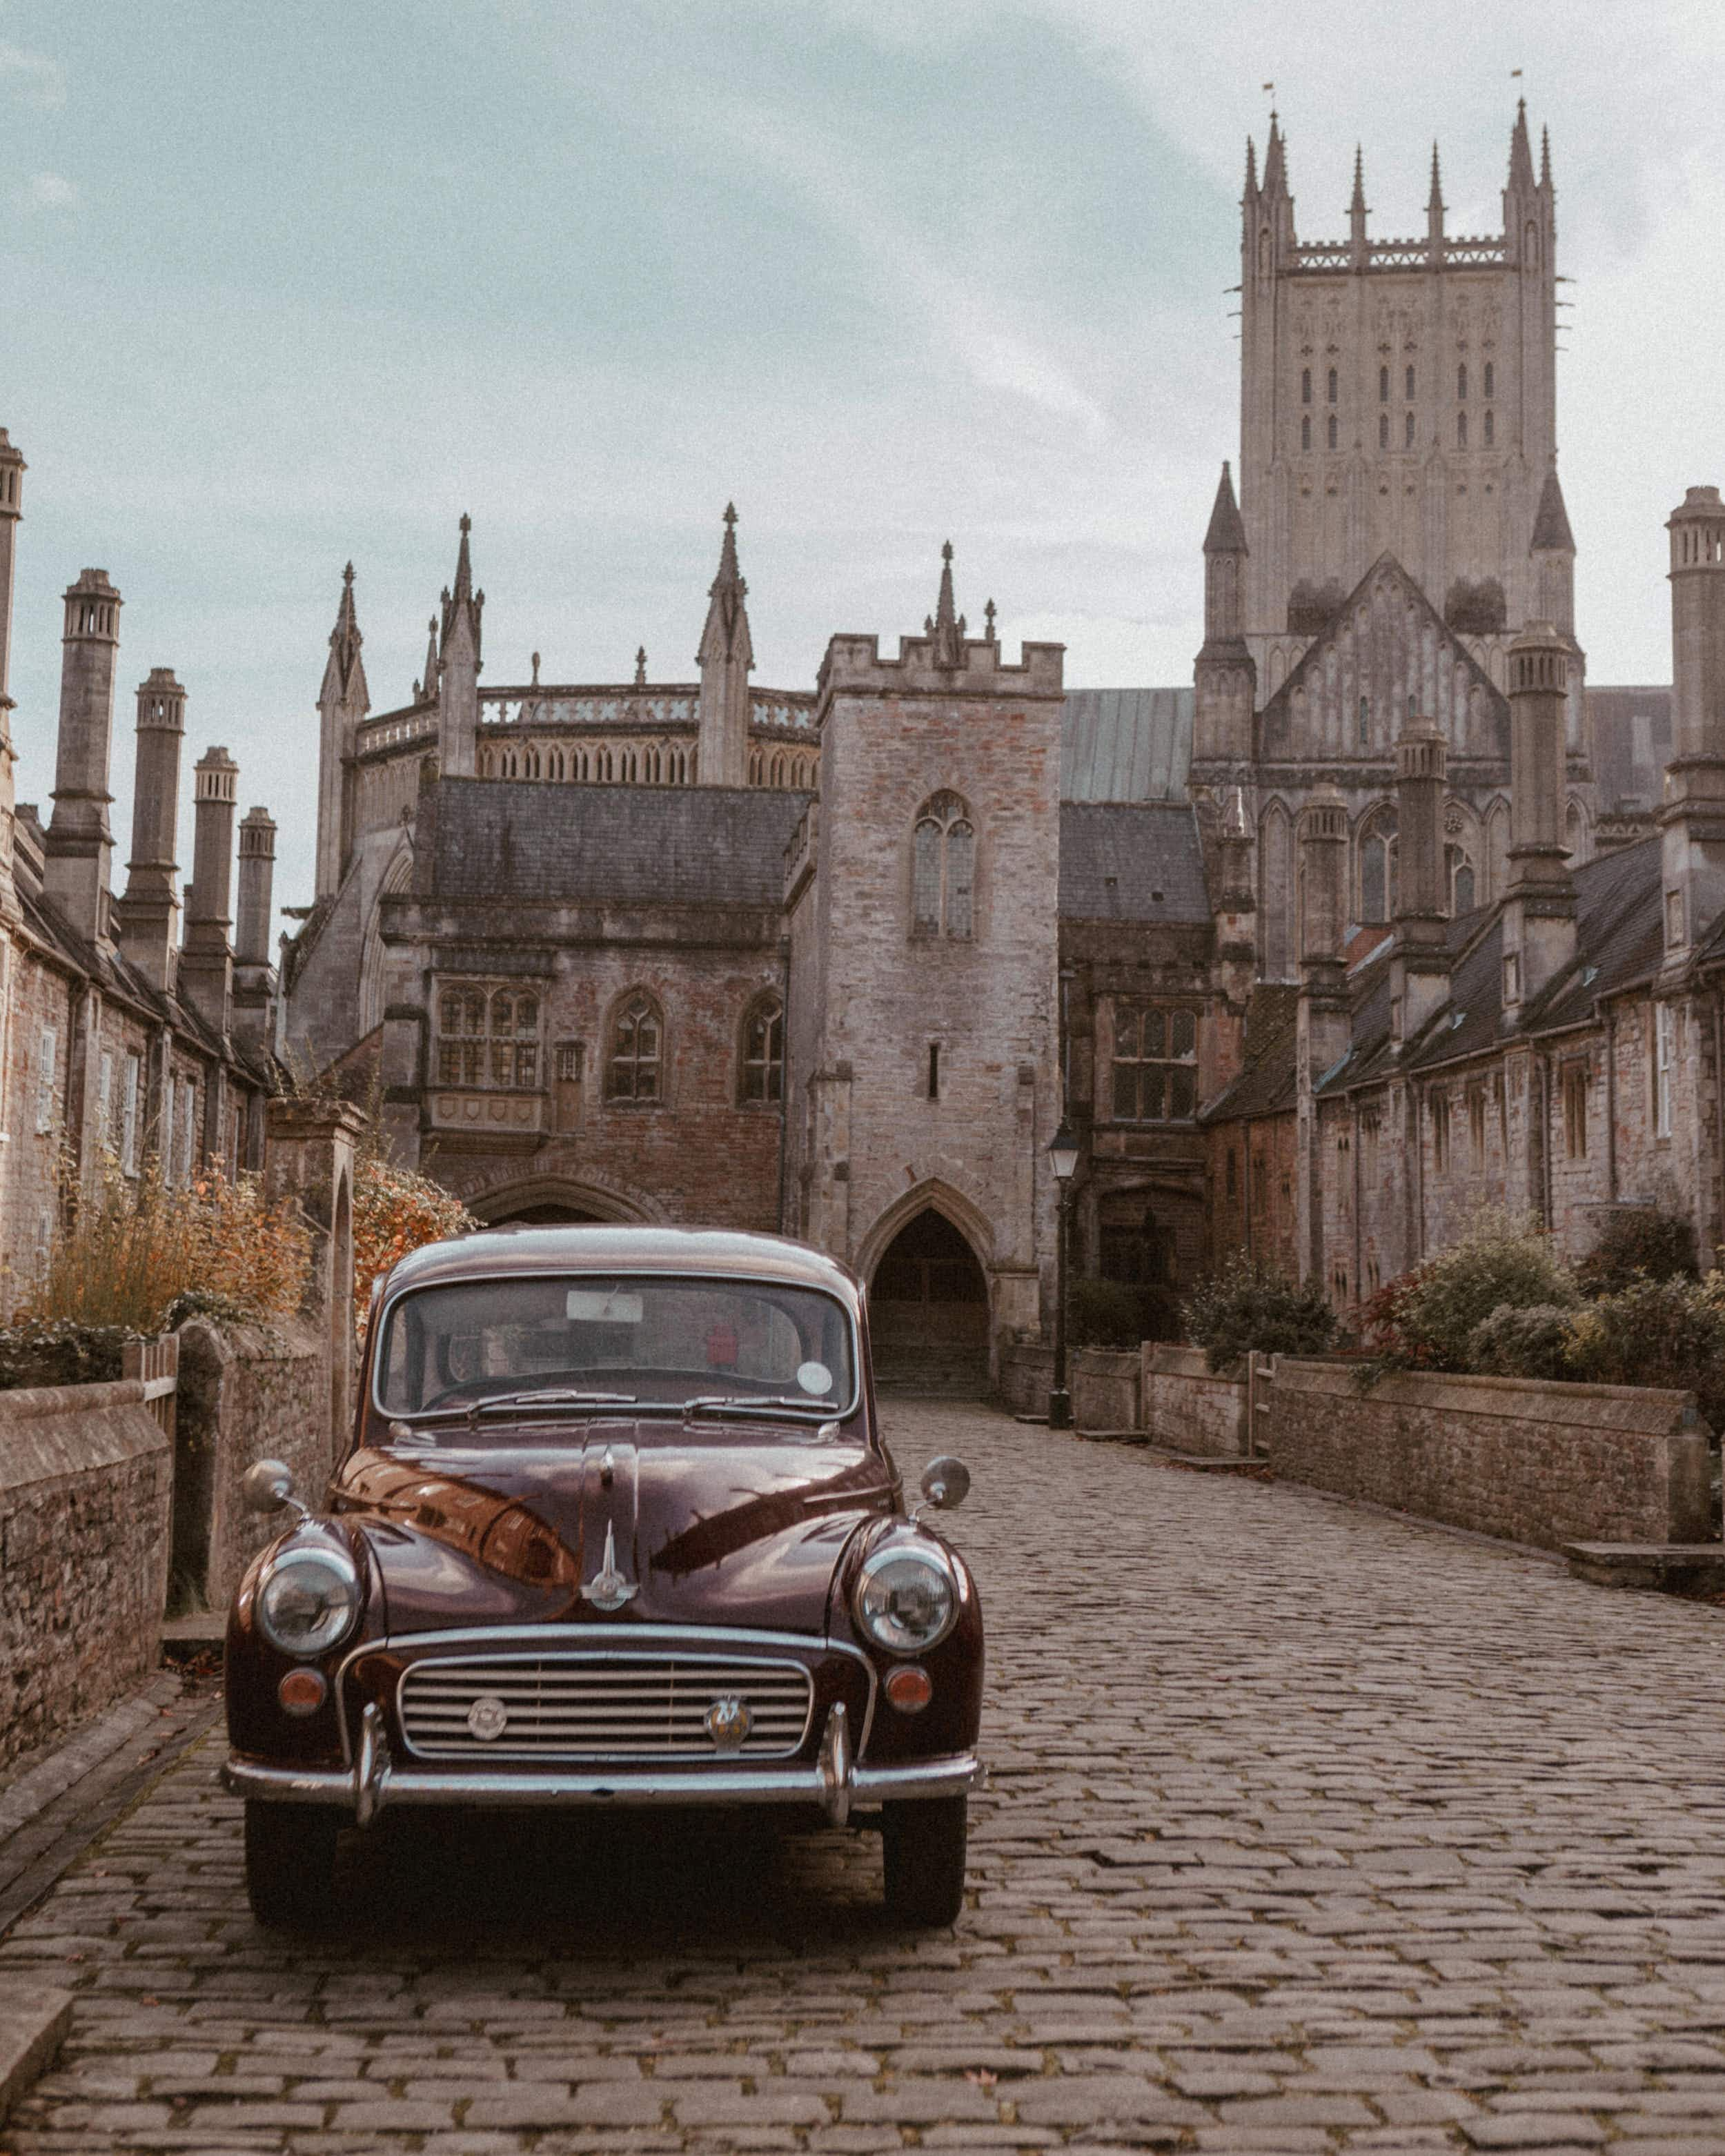 Exploring the UK's most picturesque towns in a vintage Morris Minor